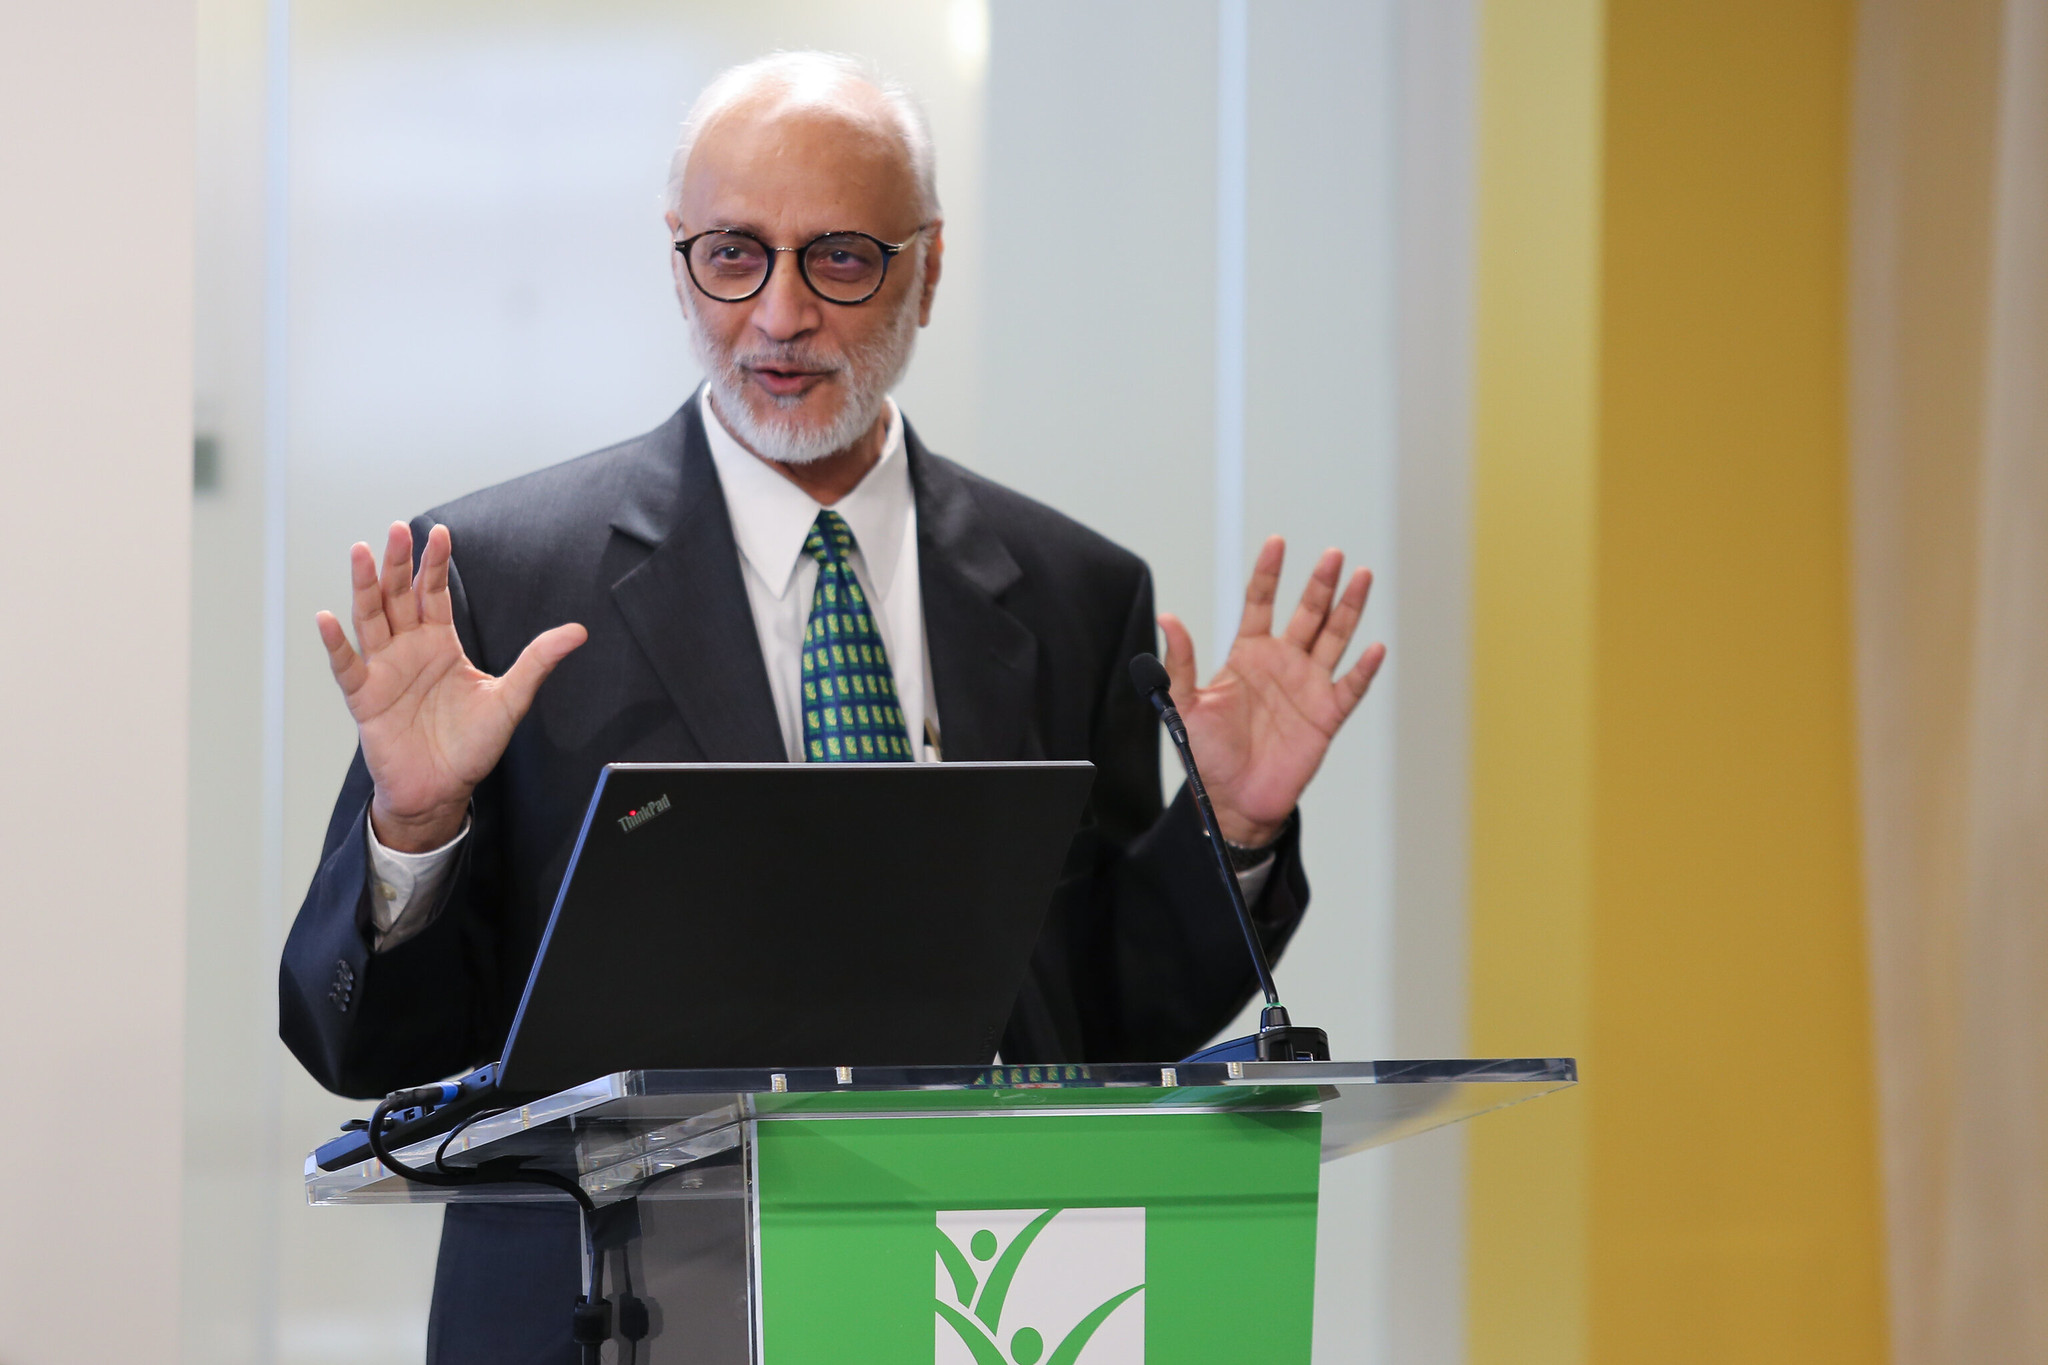 Policy seminar: Who will feed India? - CGIAR